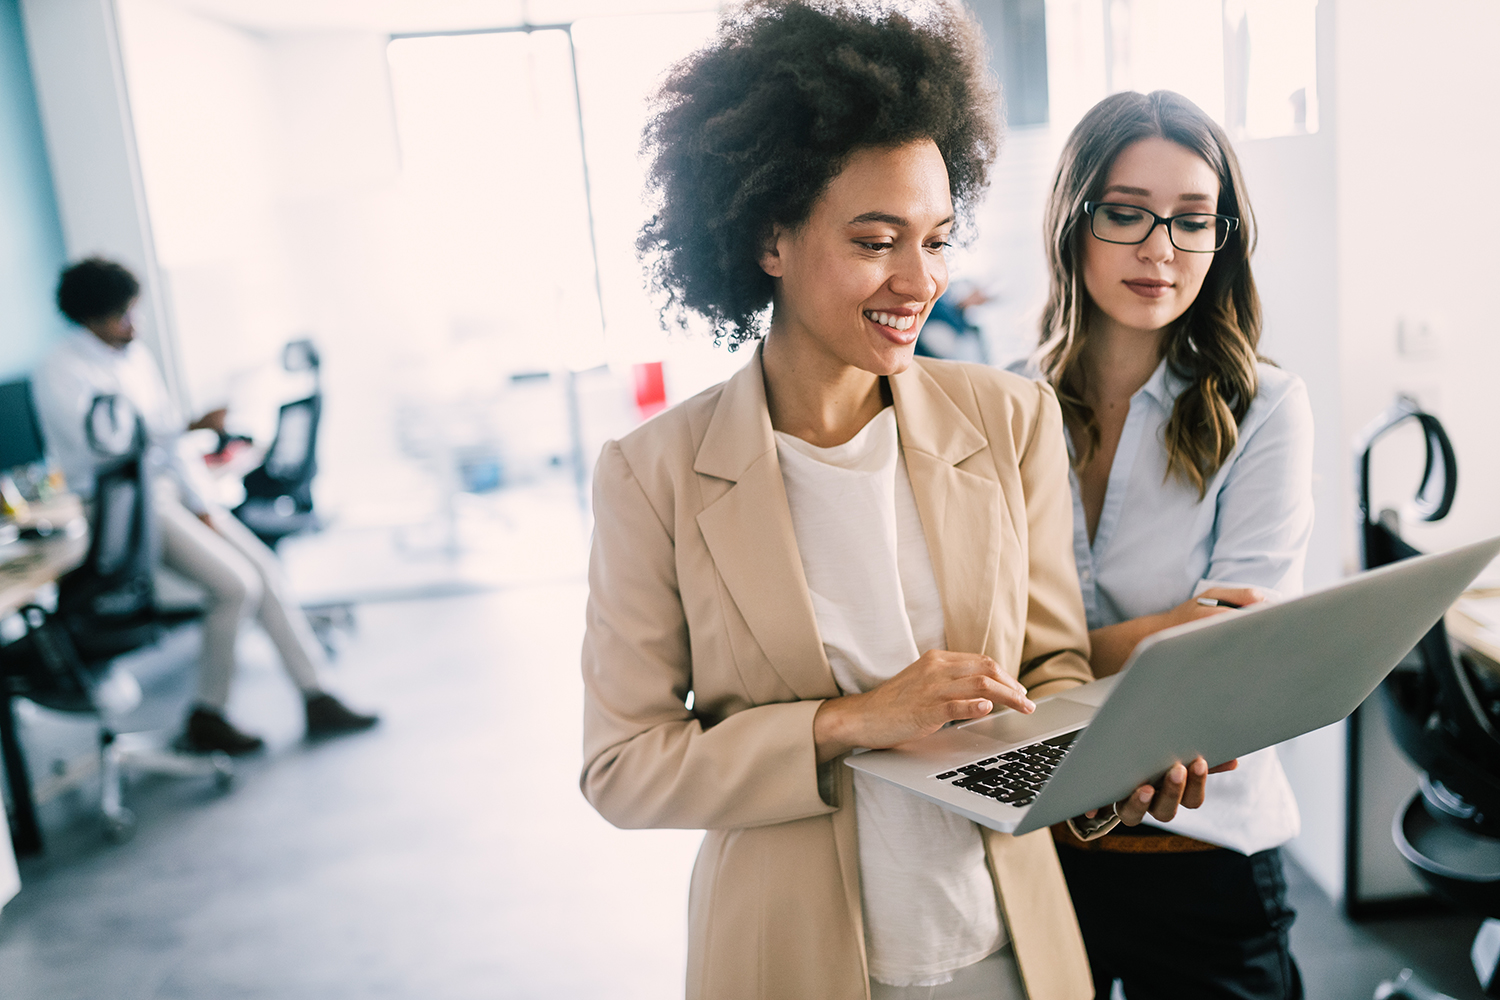 Learning People | 2 women professionals in office with laptop